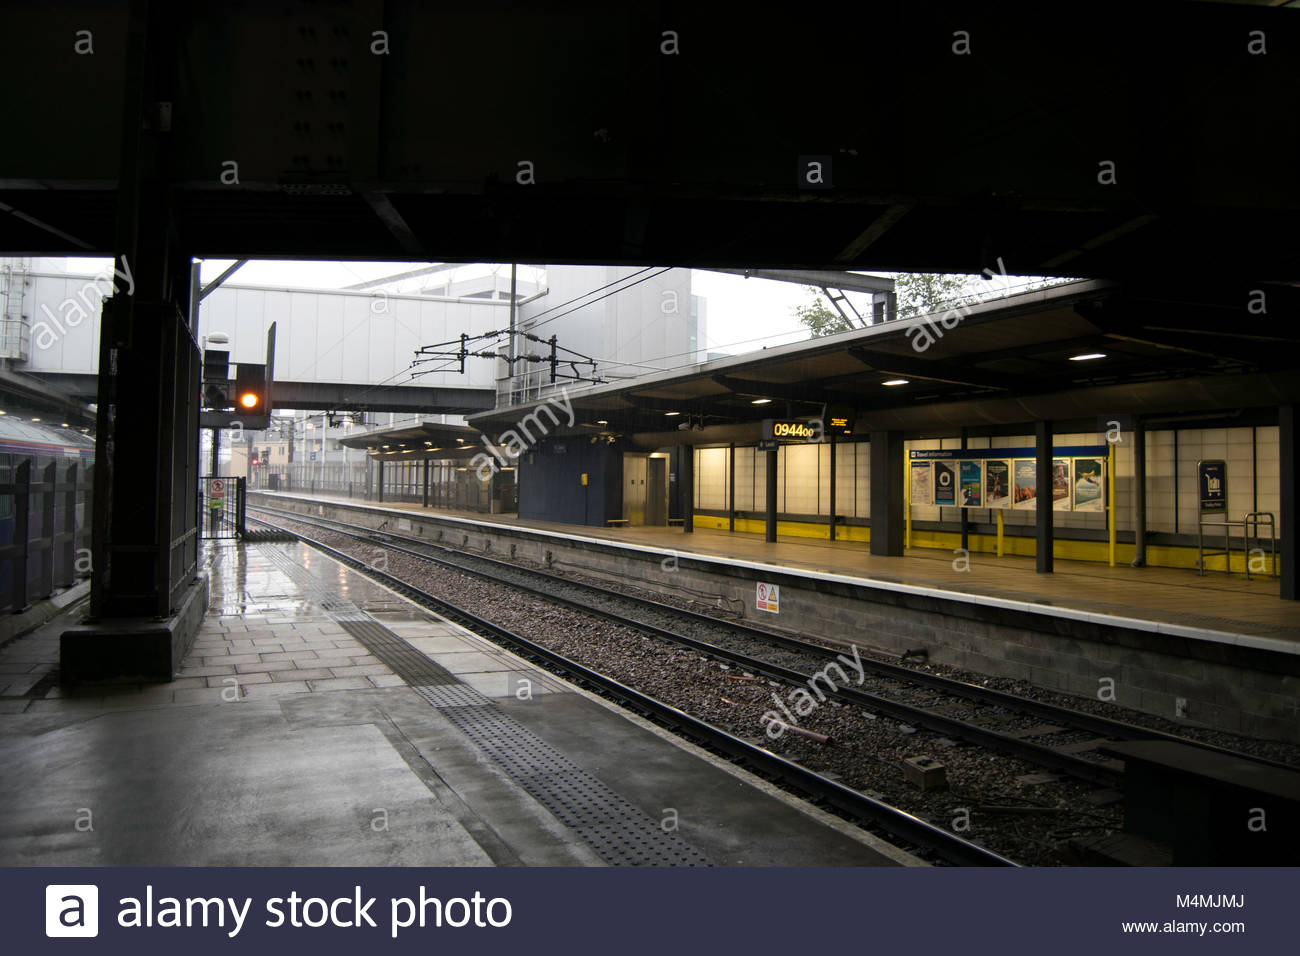 leeds train station stock photos leeds train station. Black Bedroom Furniture Sets. Home Design Ideas